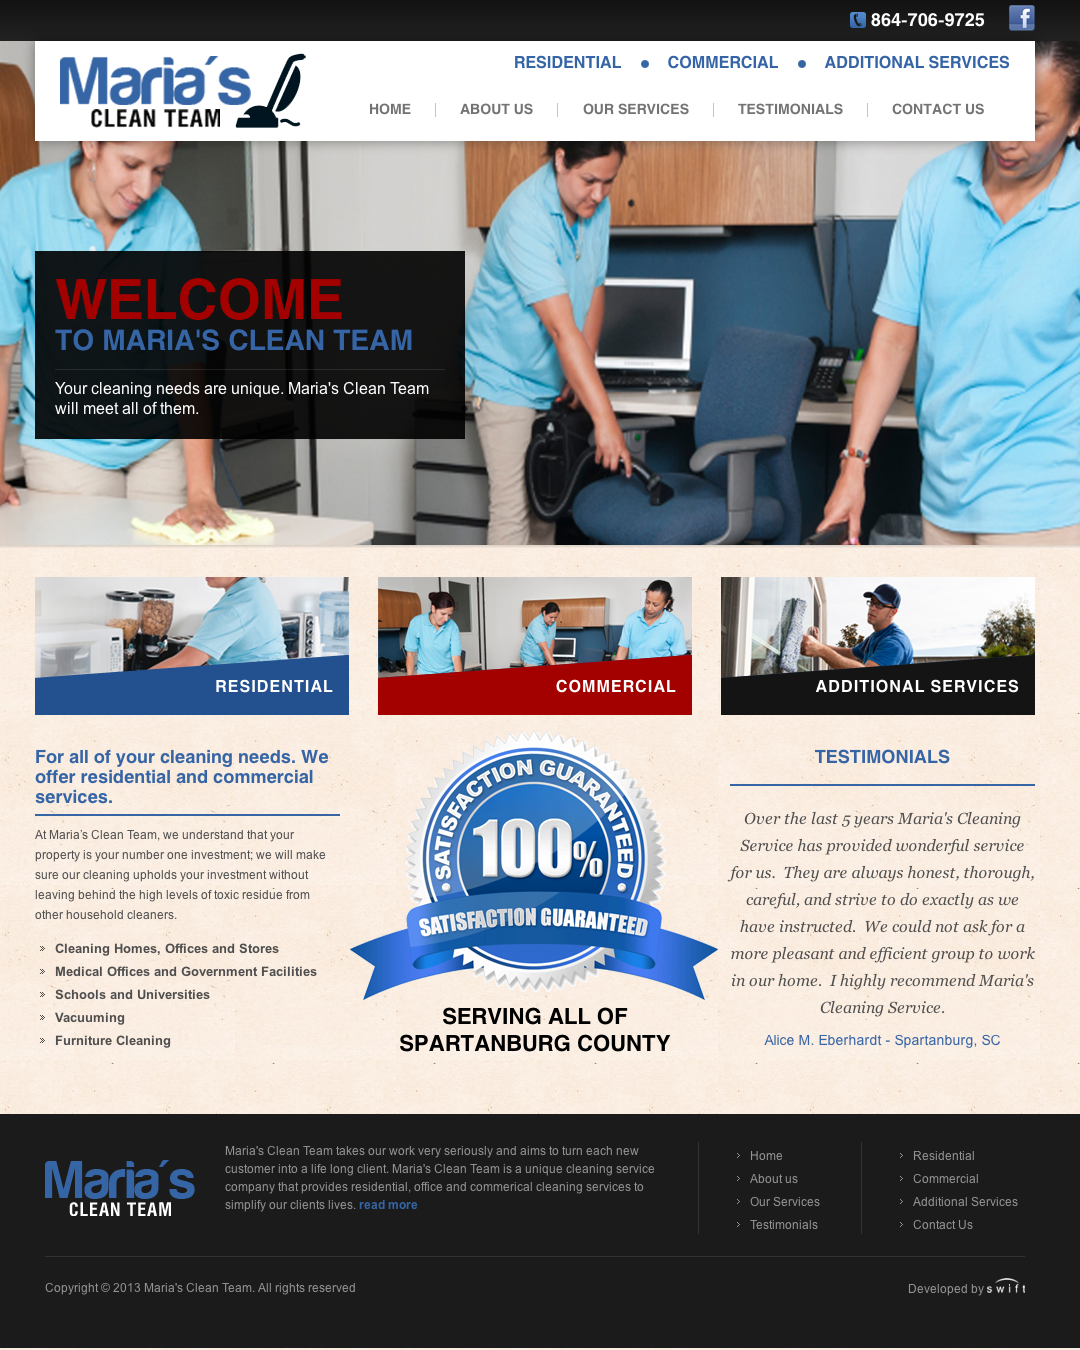 Swift Business Solutions Launches Maria's Clean Team Website